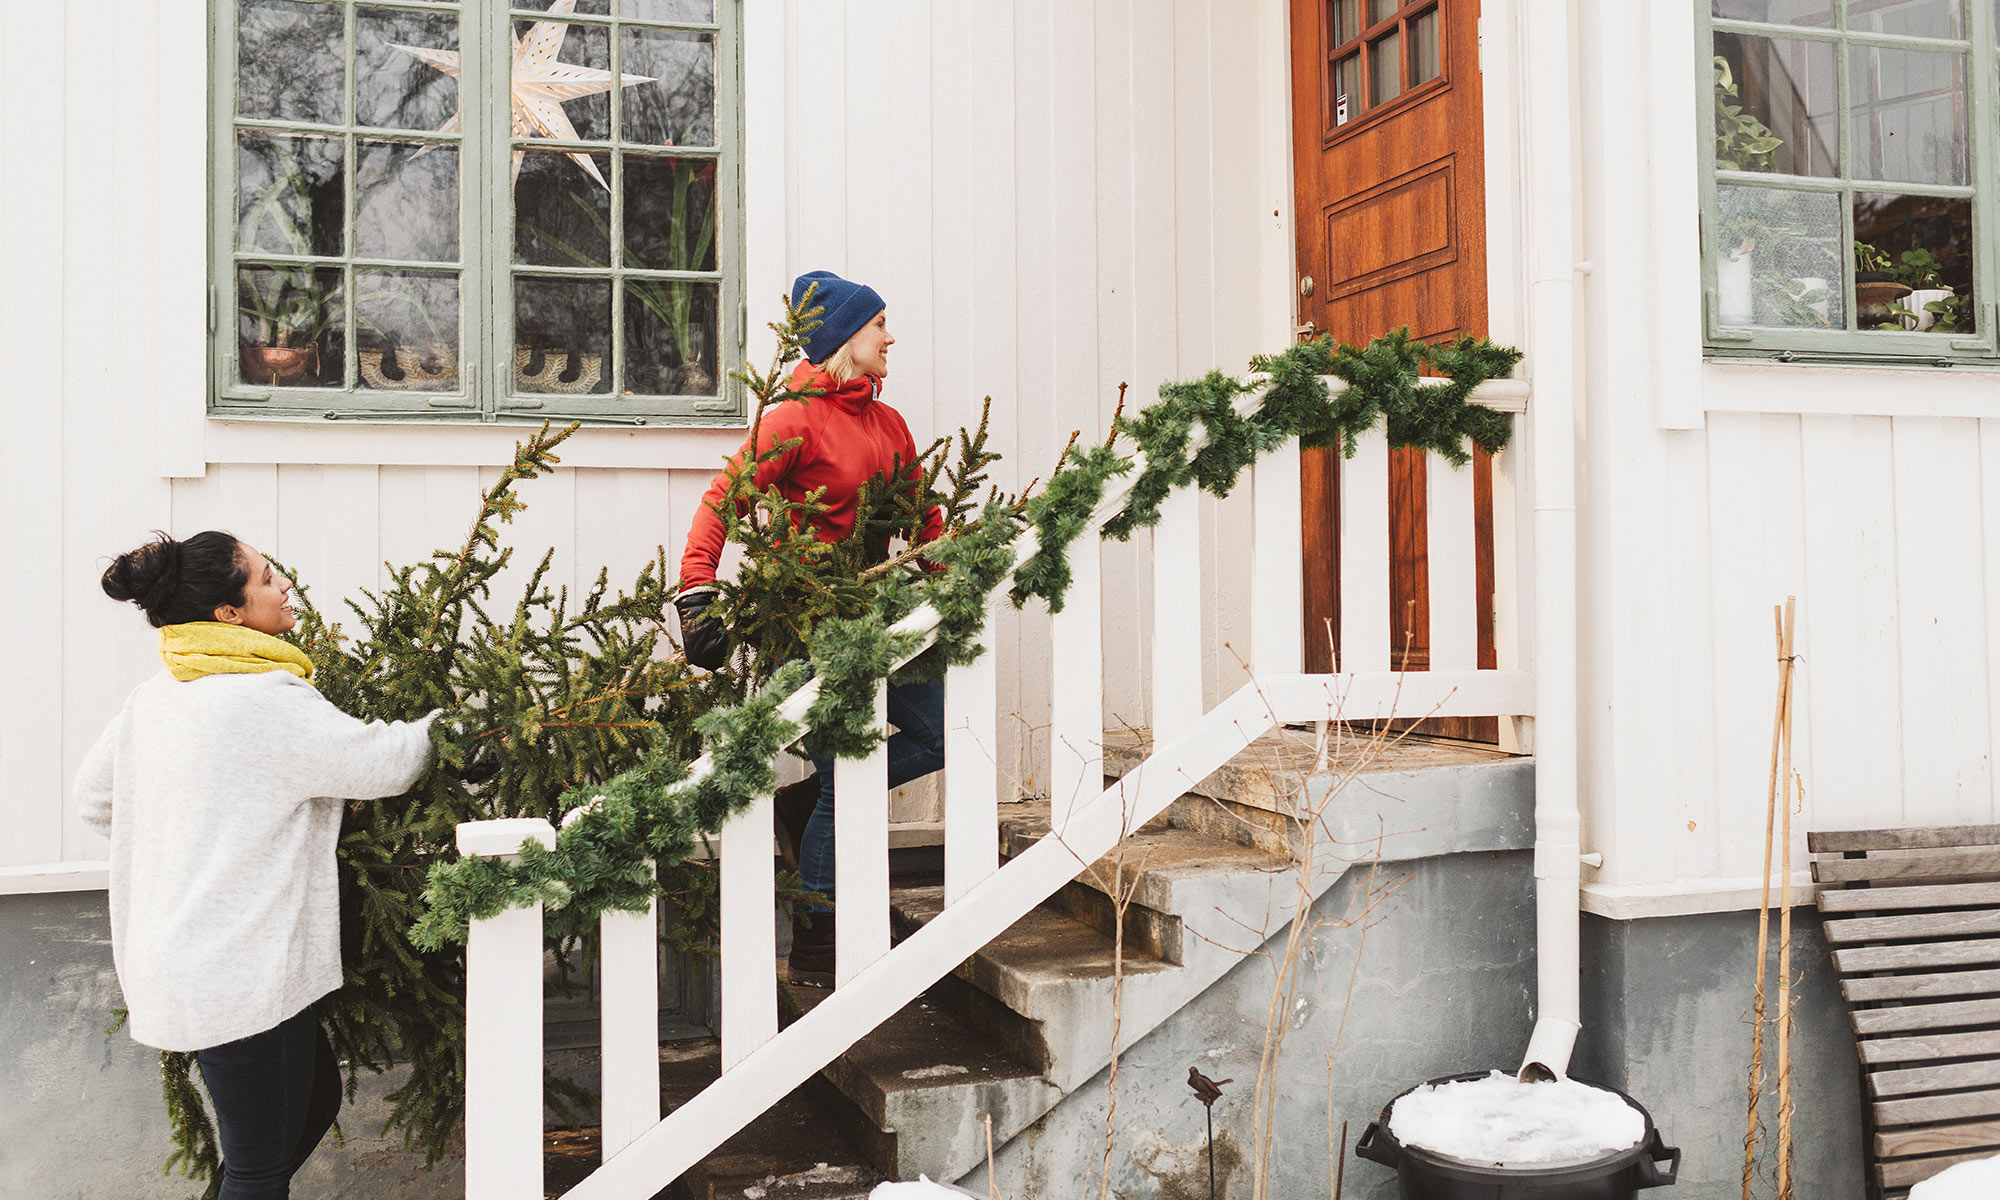 Carrying a christmas tree up the stairs.